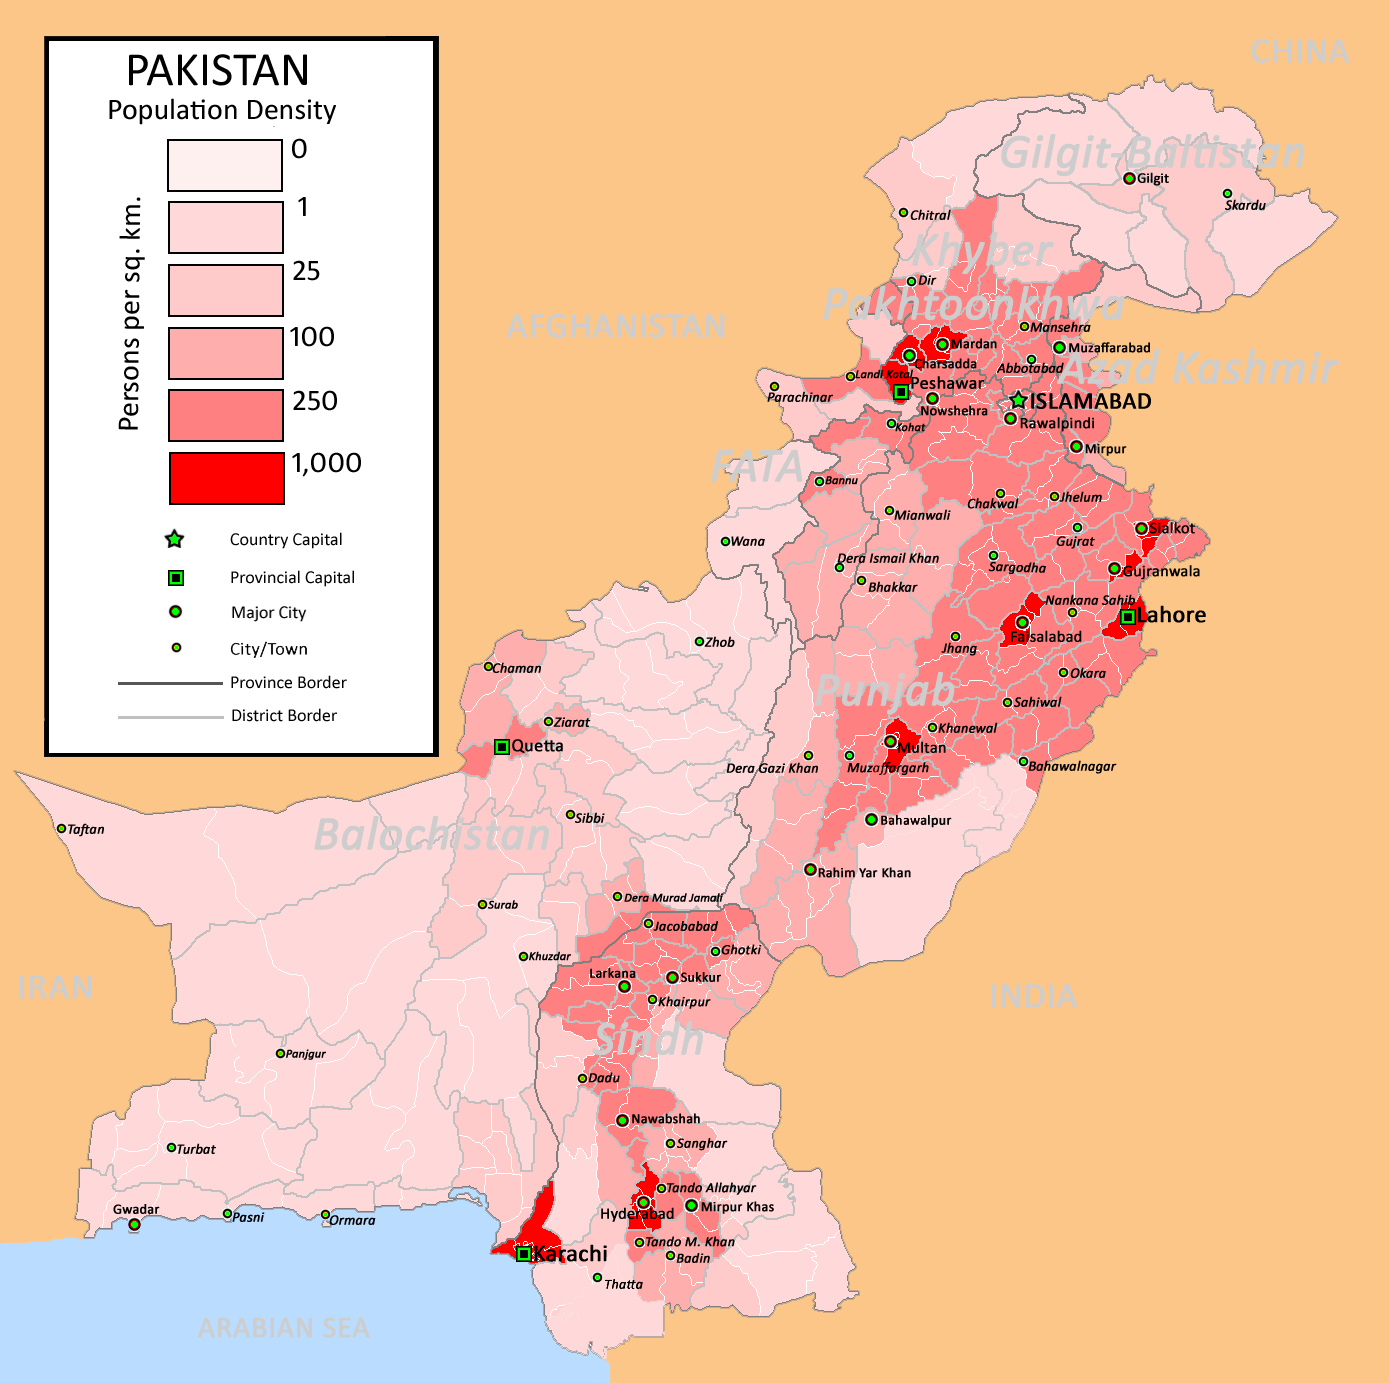 Pakistan Population Density map,population,density,infographic